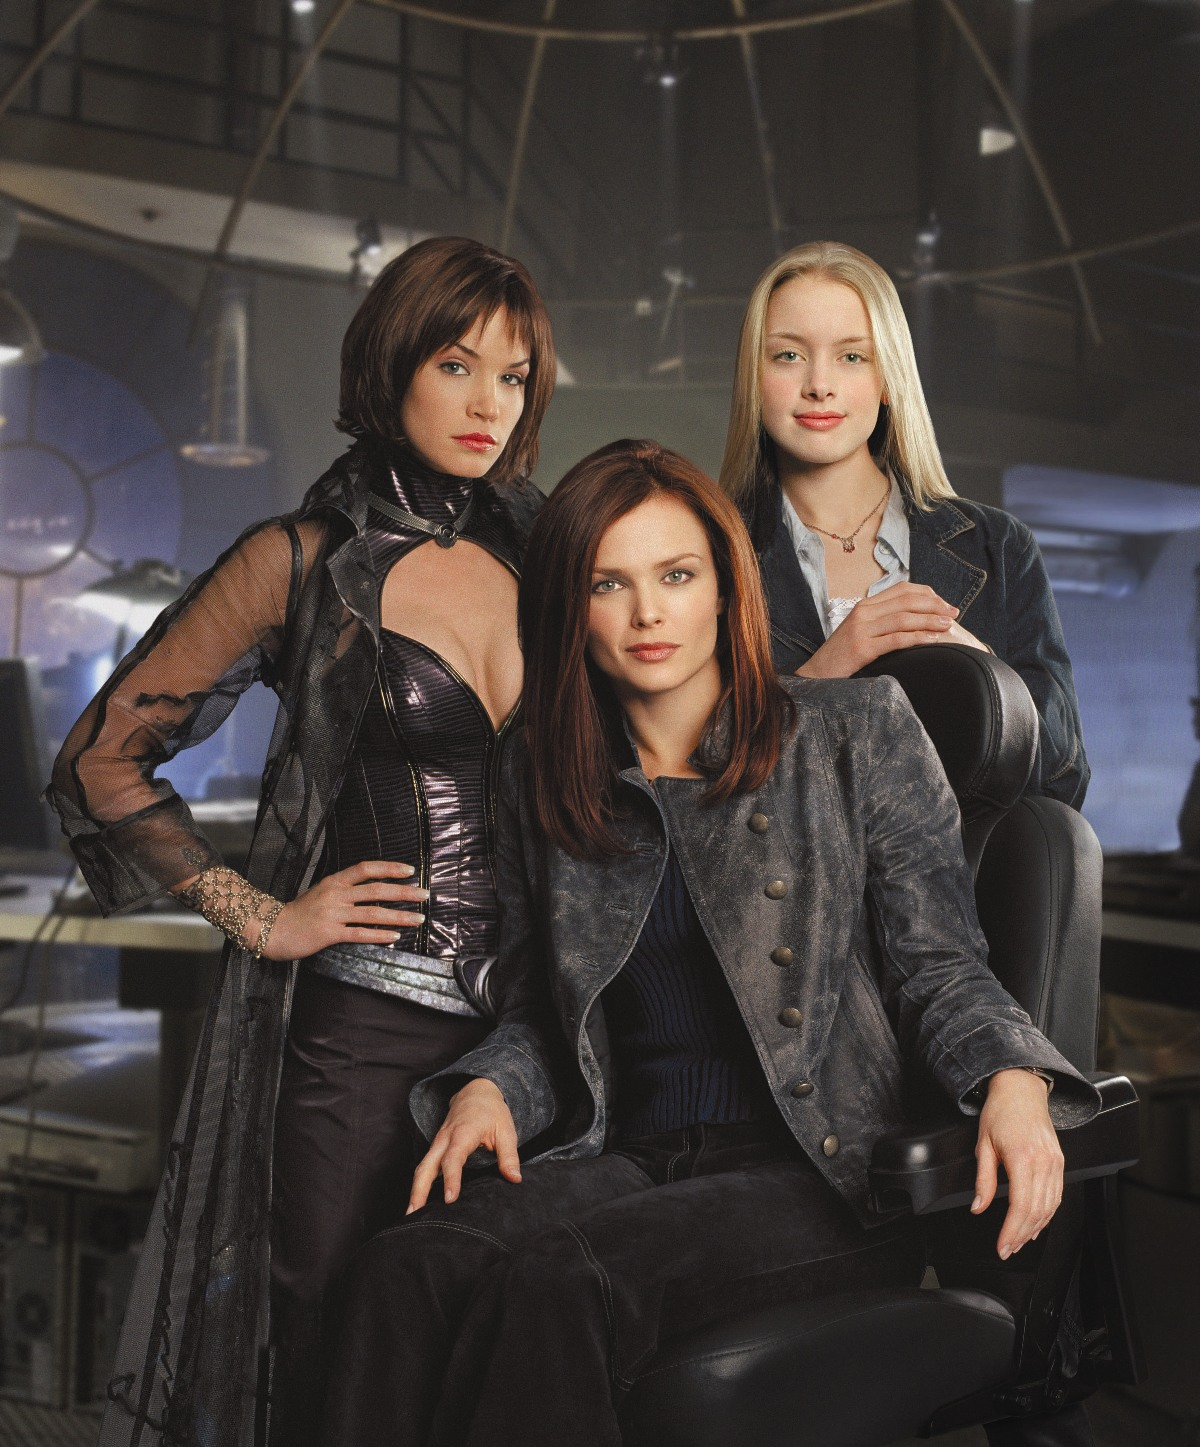 Birds of prey tv series - photo#1